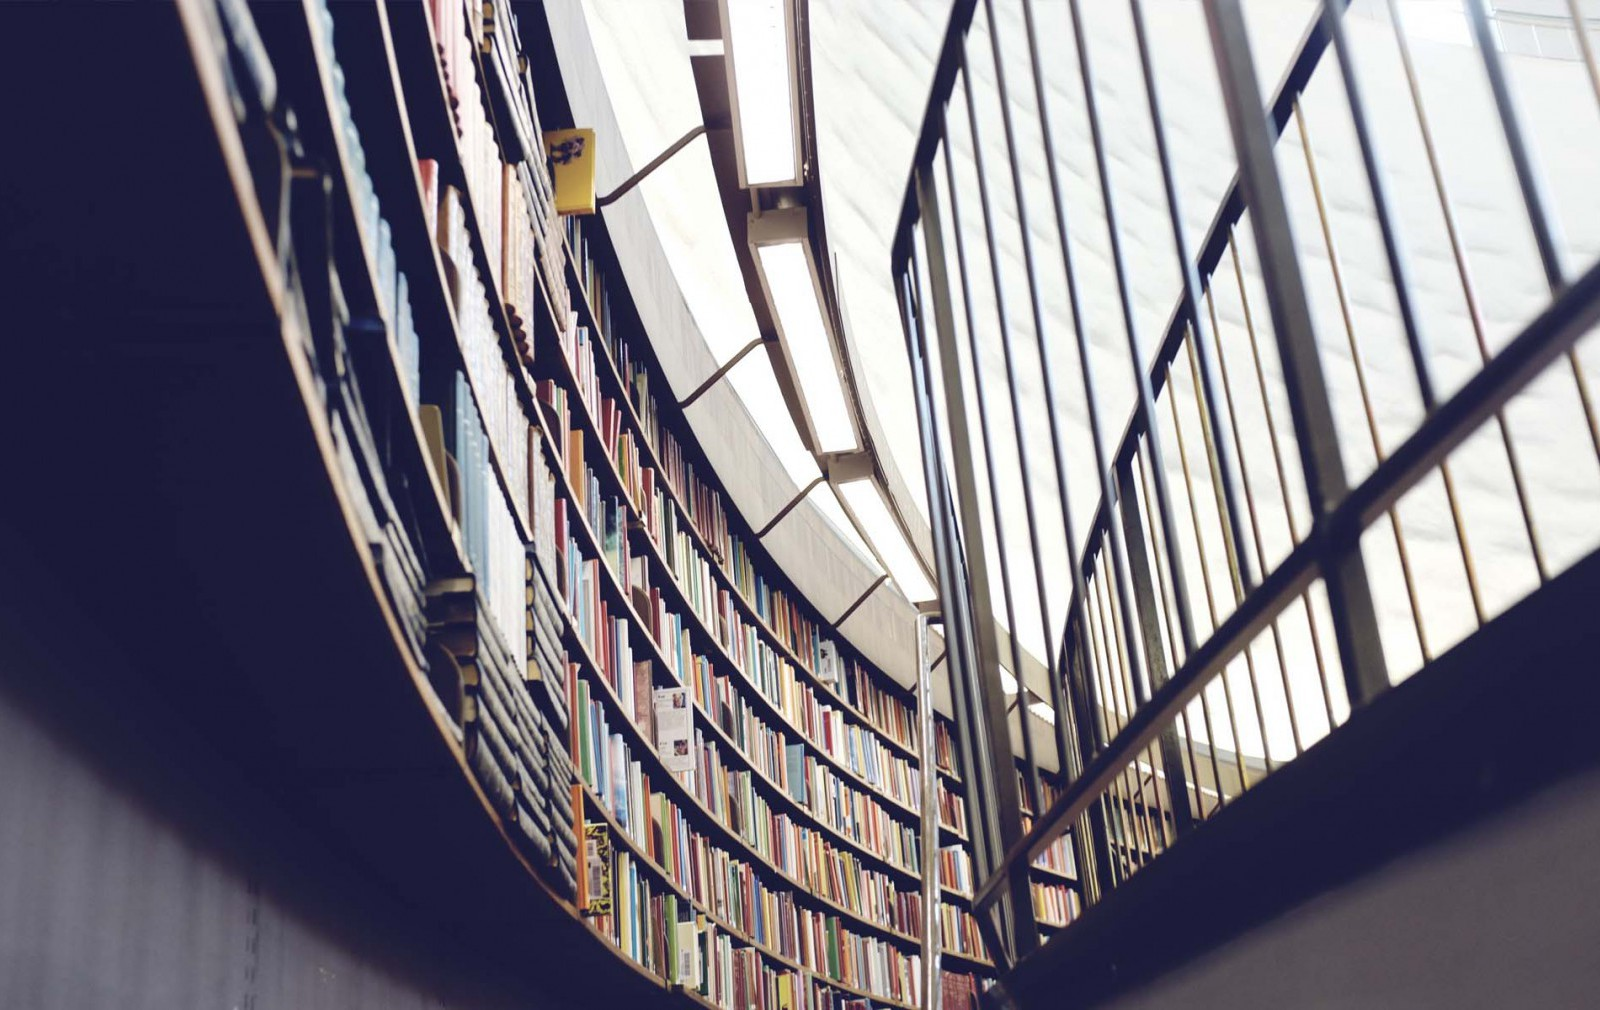 University Library Relocation Project